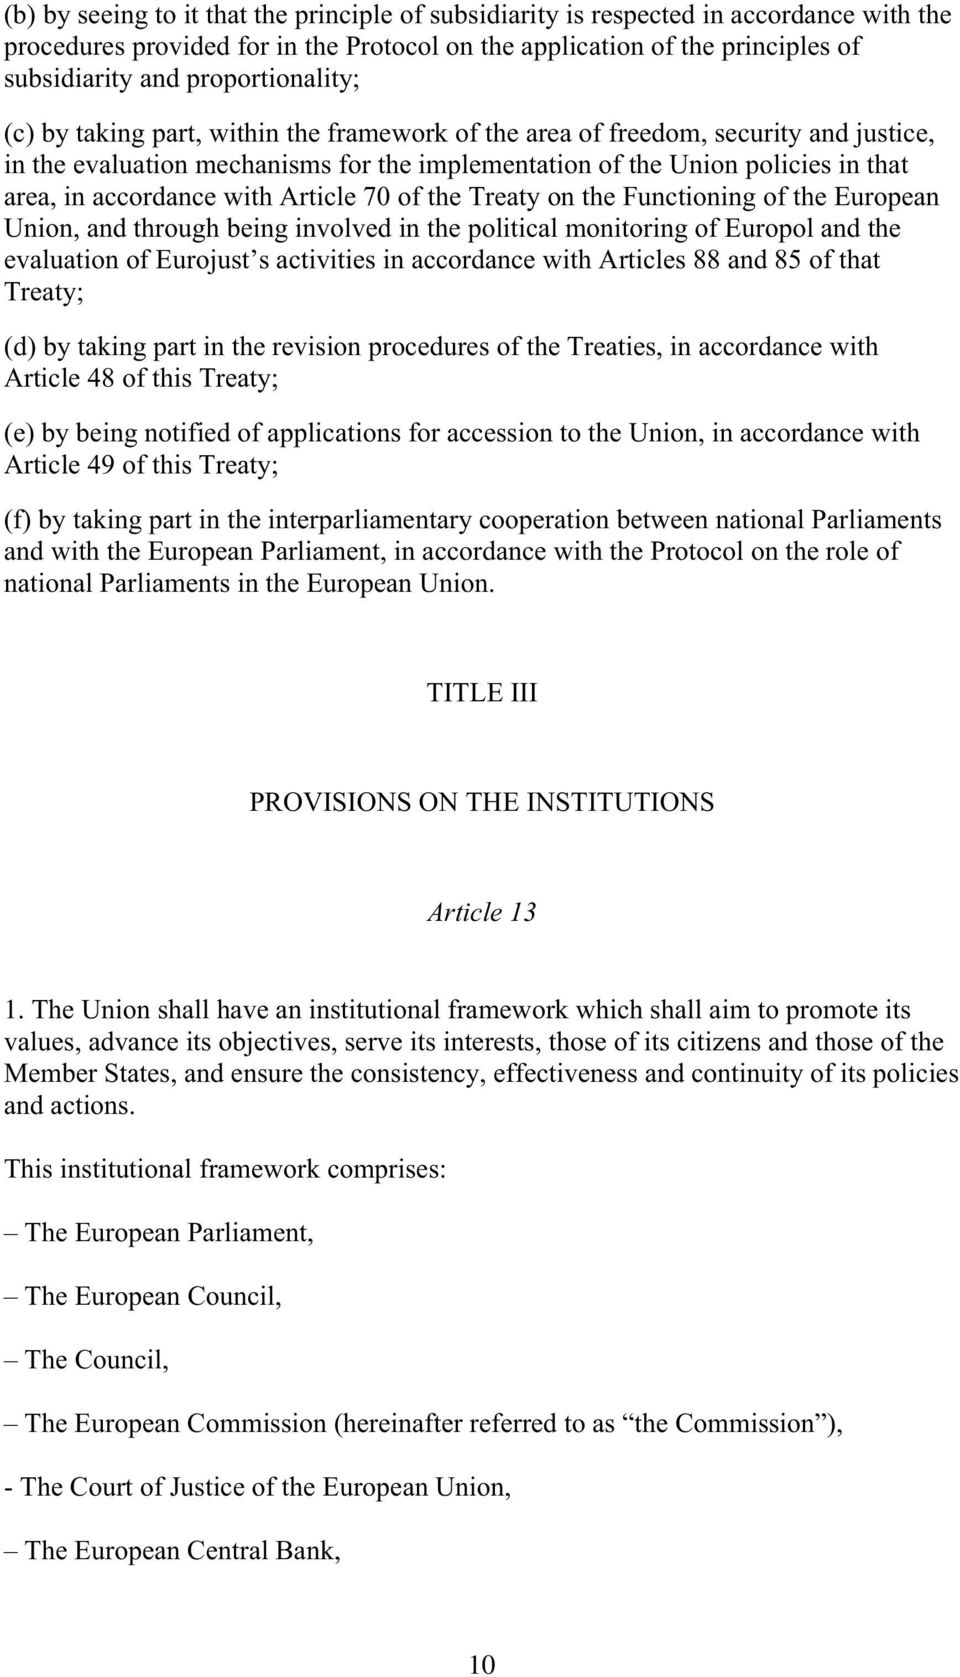 accordance with Article 70 of the Treaty on the Functioning of the European Union, and through being involved in the political monitoring of Europol and the evaluation of Eurojust s activities in